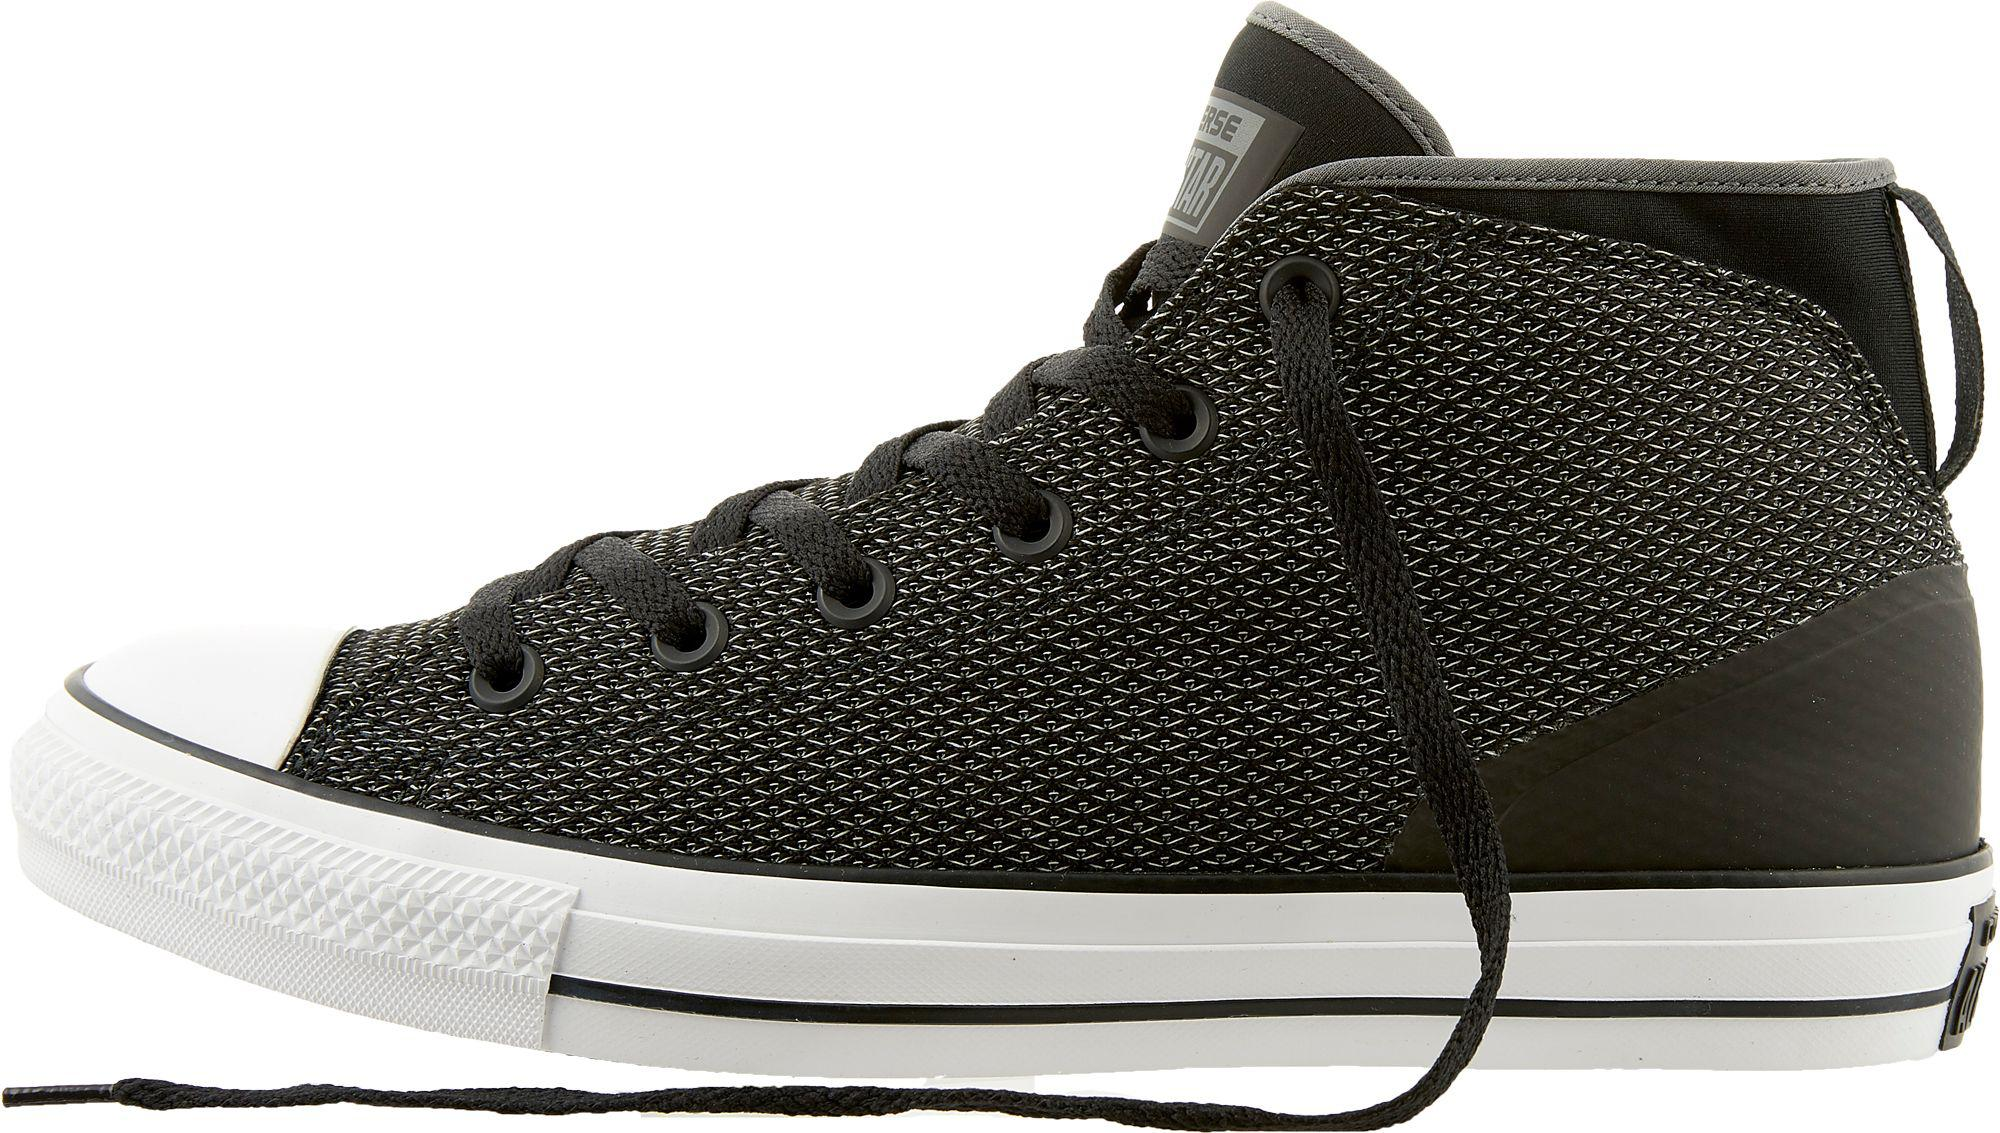 d5792b3b9bc4 Lyst - Converse Chuck Taylor All Star Syde Street Mid-top Casual ...